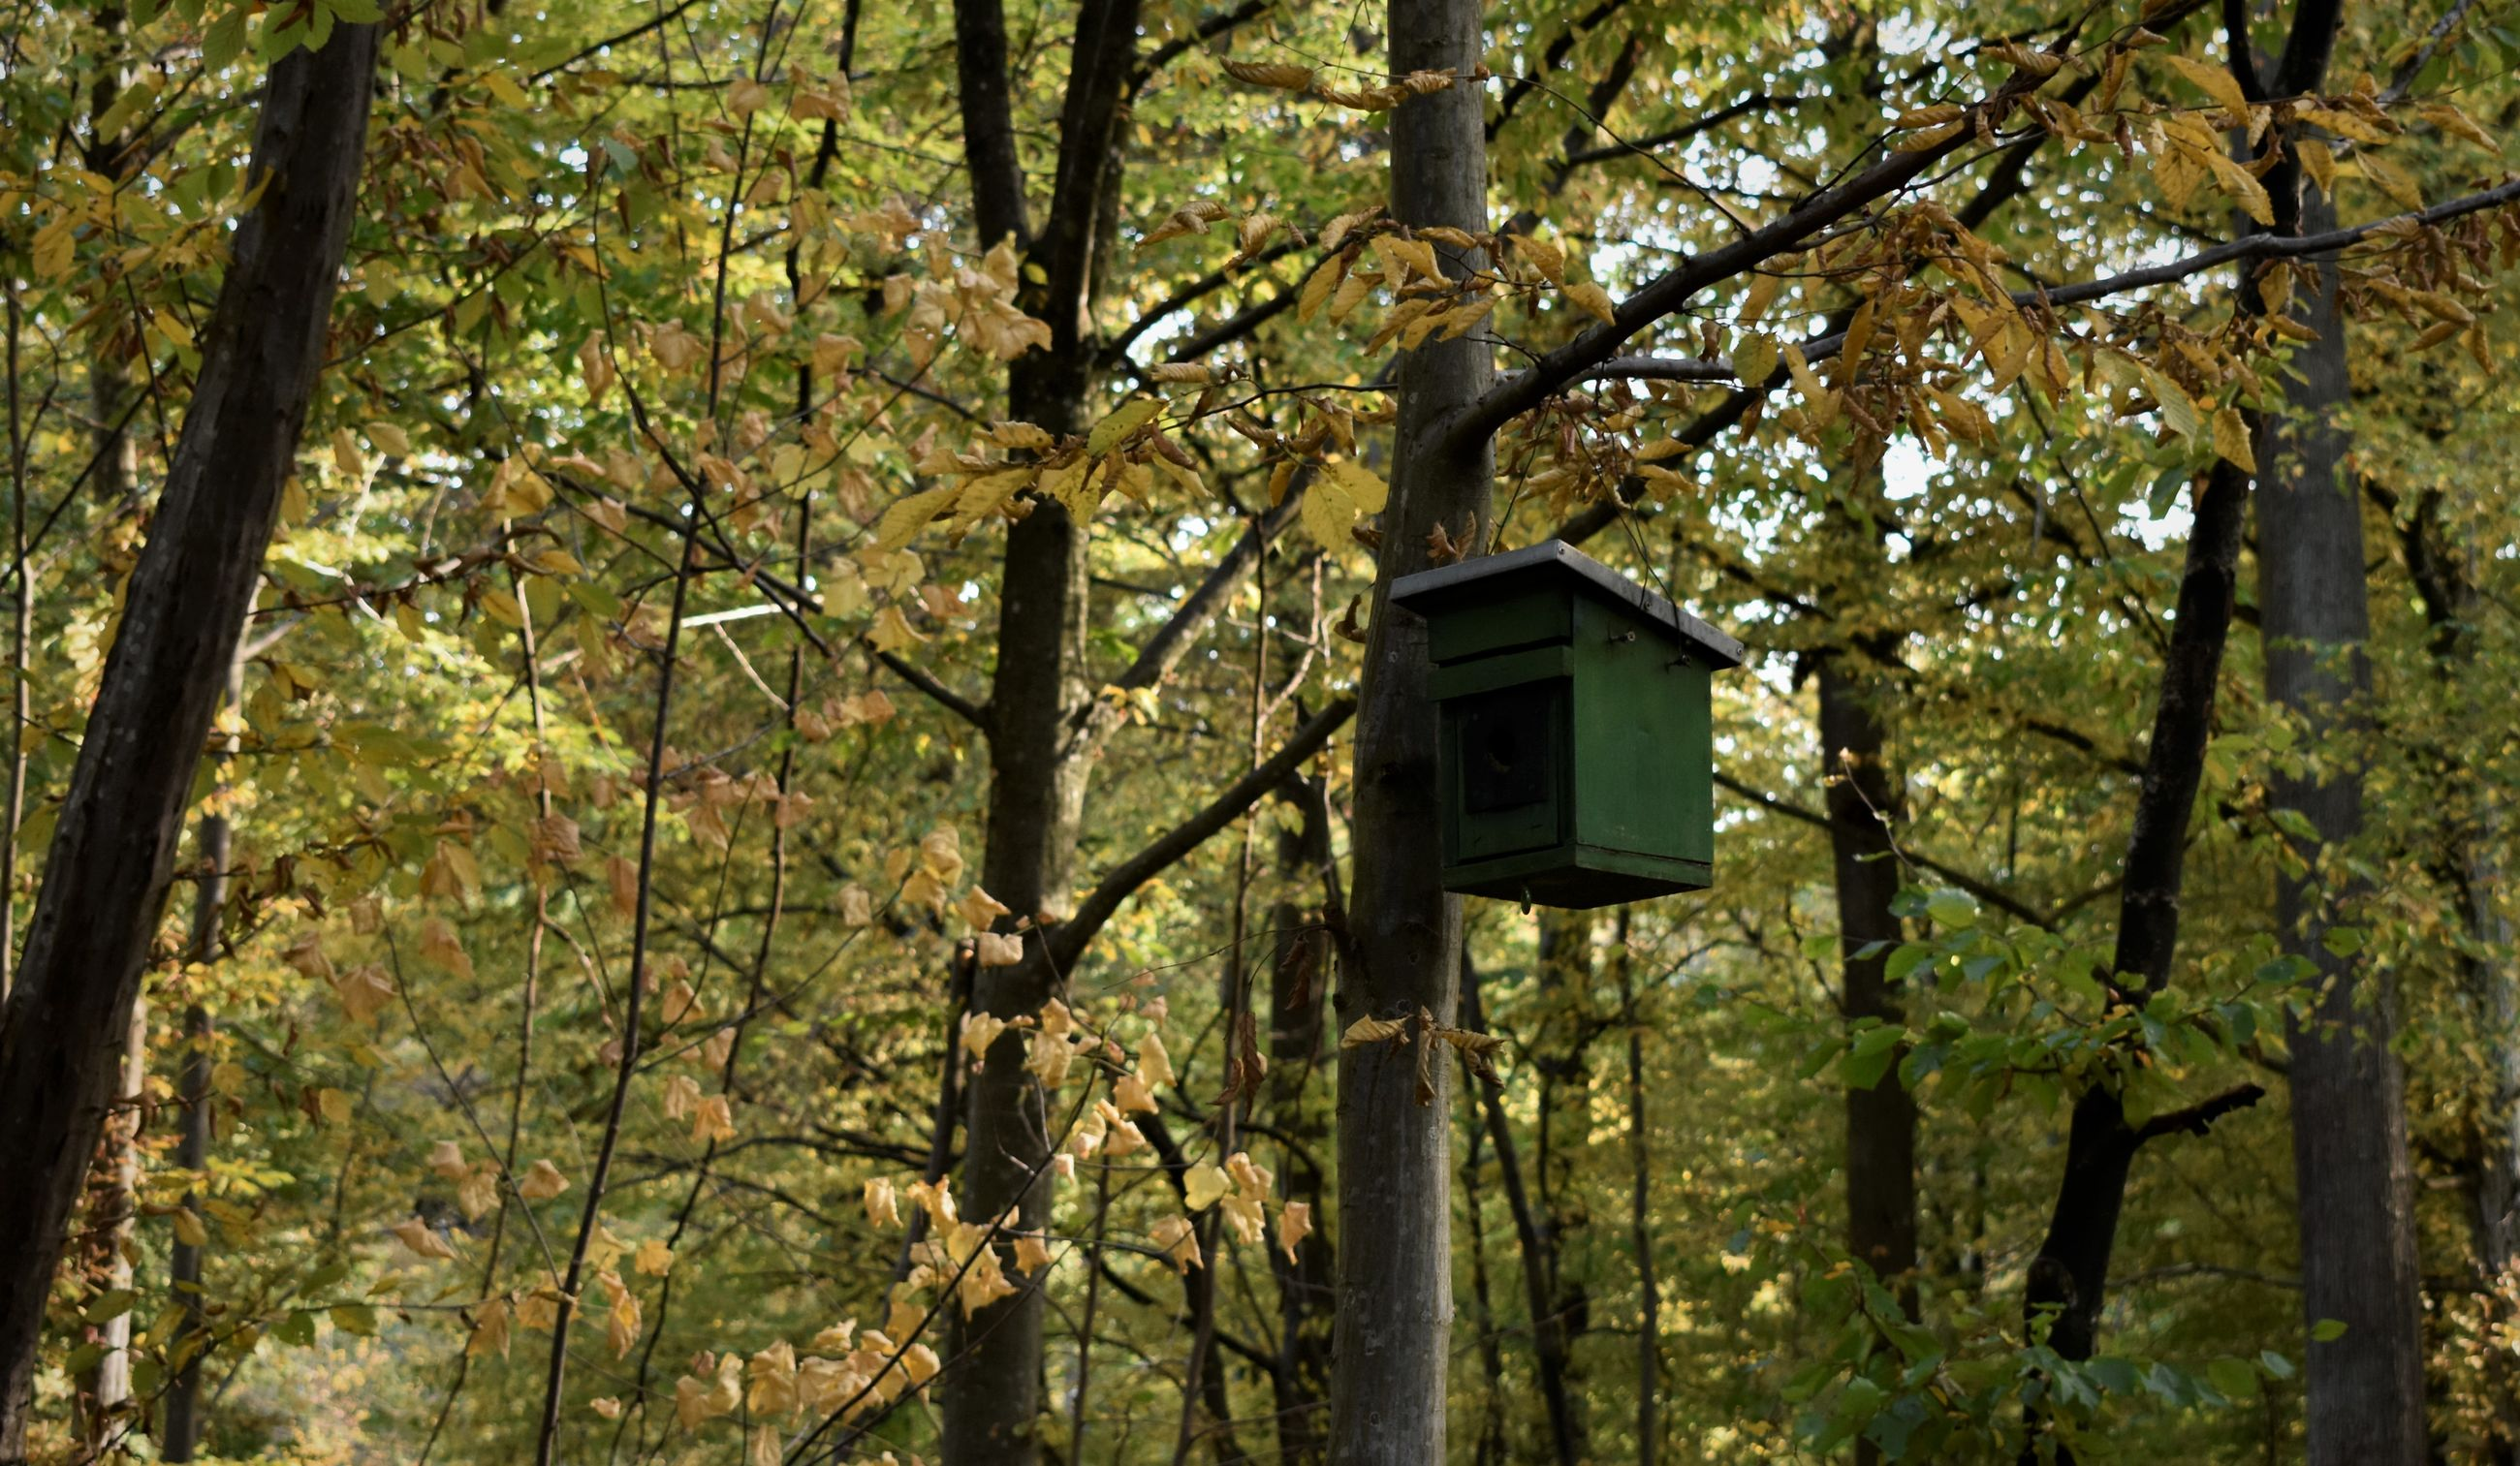 LOW ANGLE VIEW OF BIRDHOUSE HANGING ON TREE